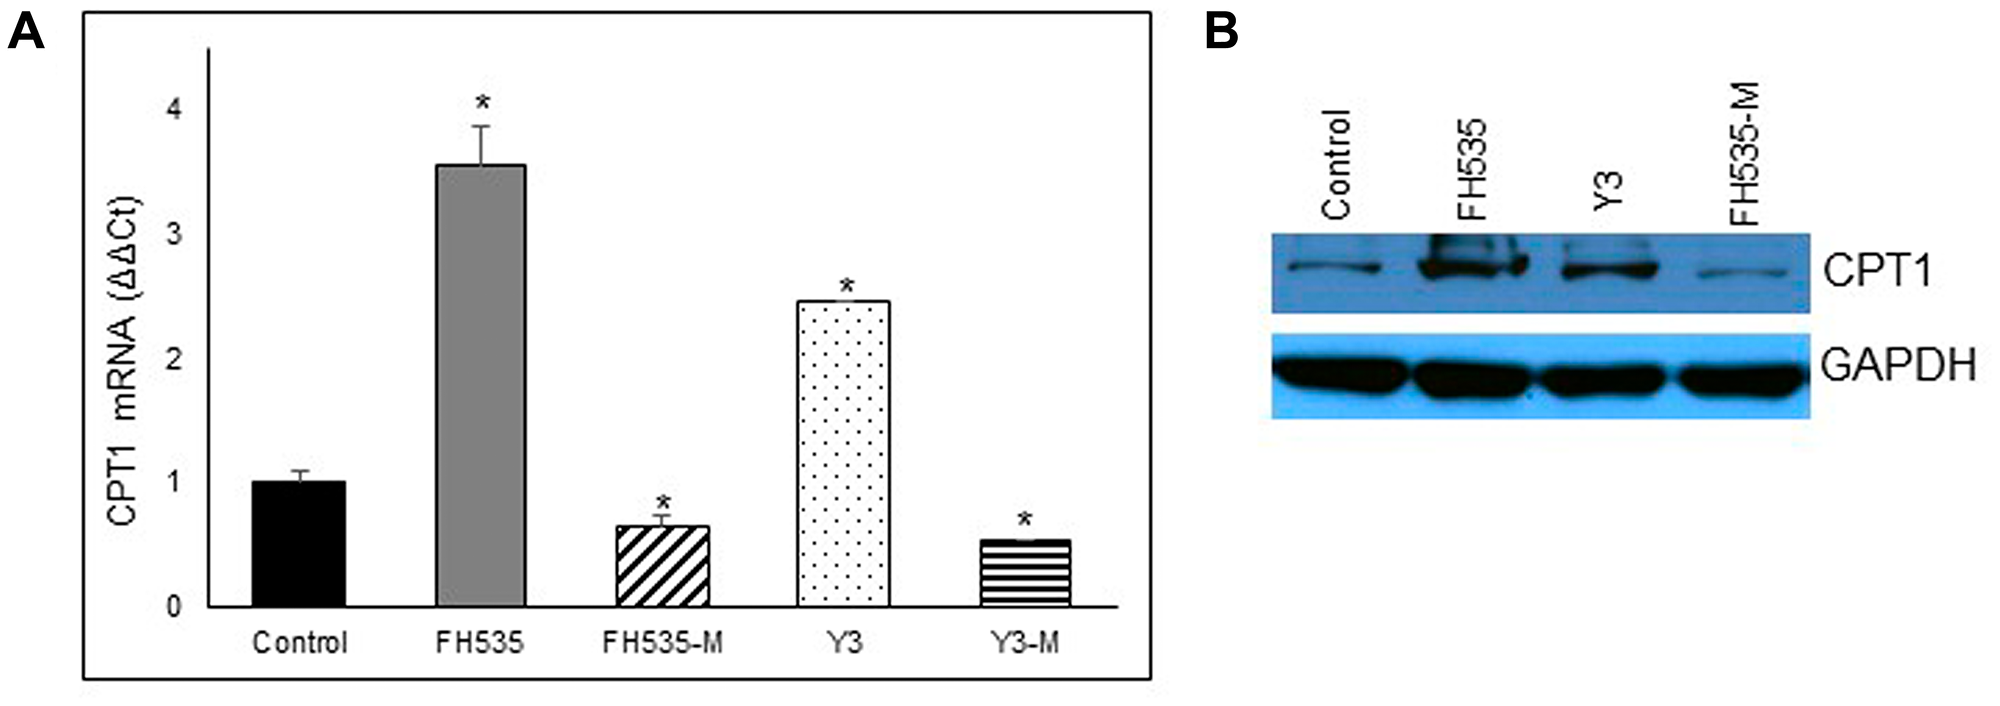 Effect of FH535 and derivatives on CPT1 expression.